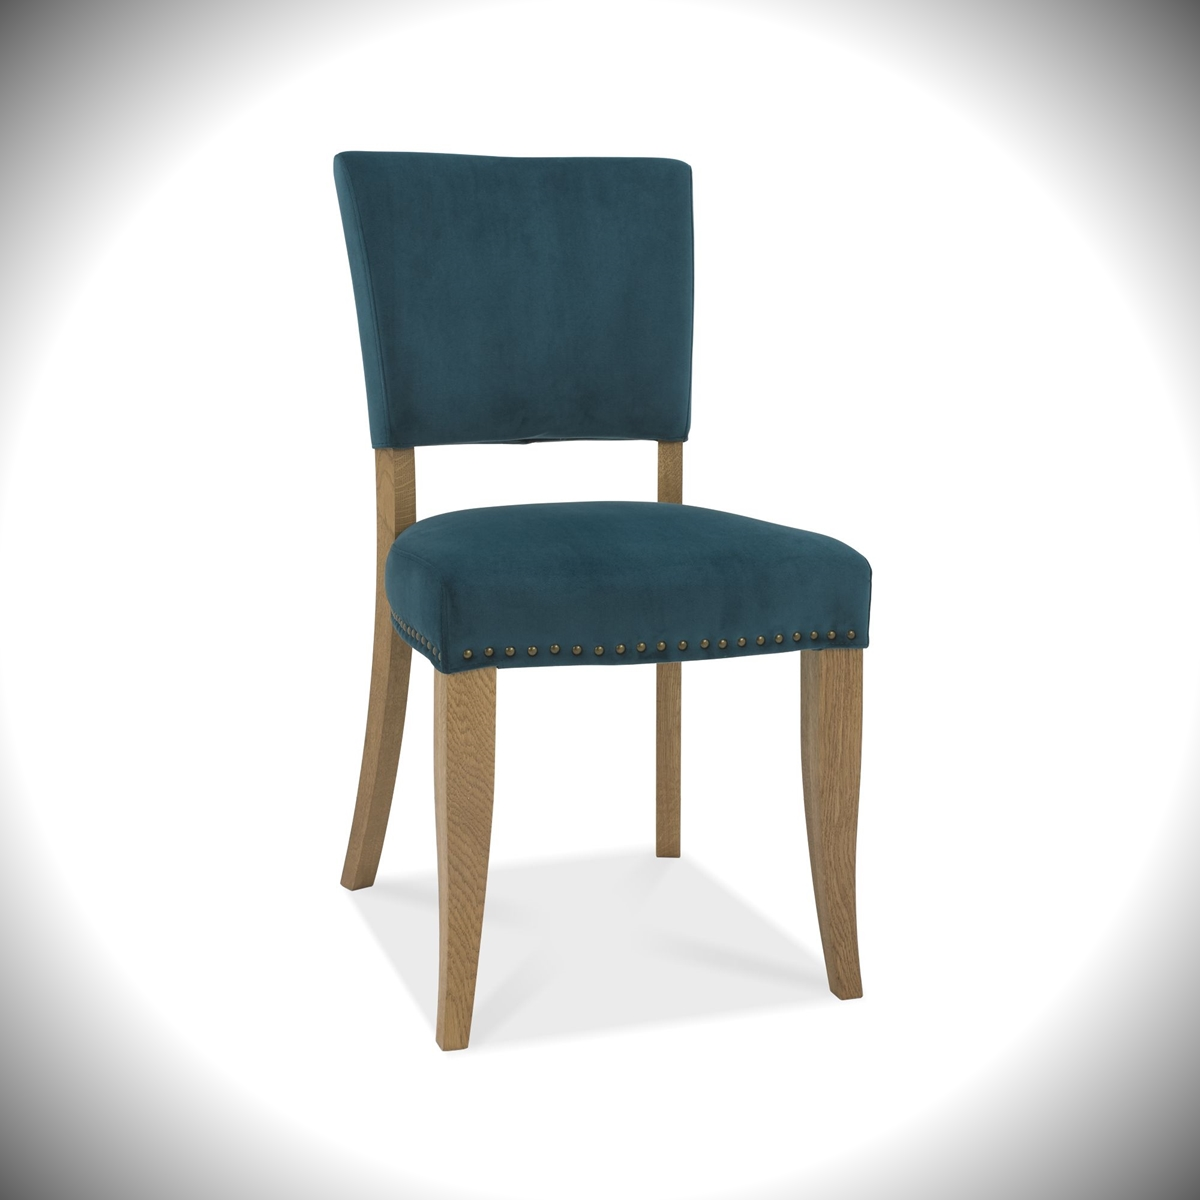 Rustic Oak - Upholstered Velvet Chair - Sea Green